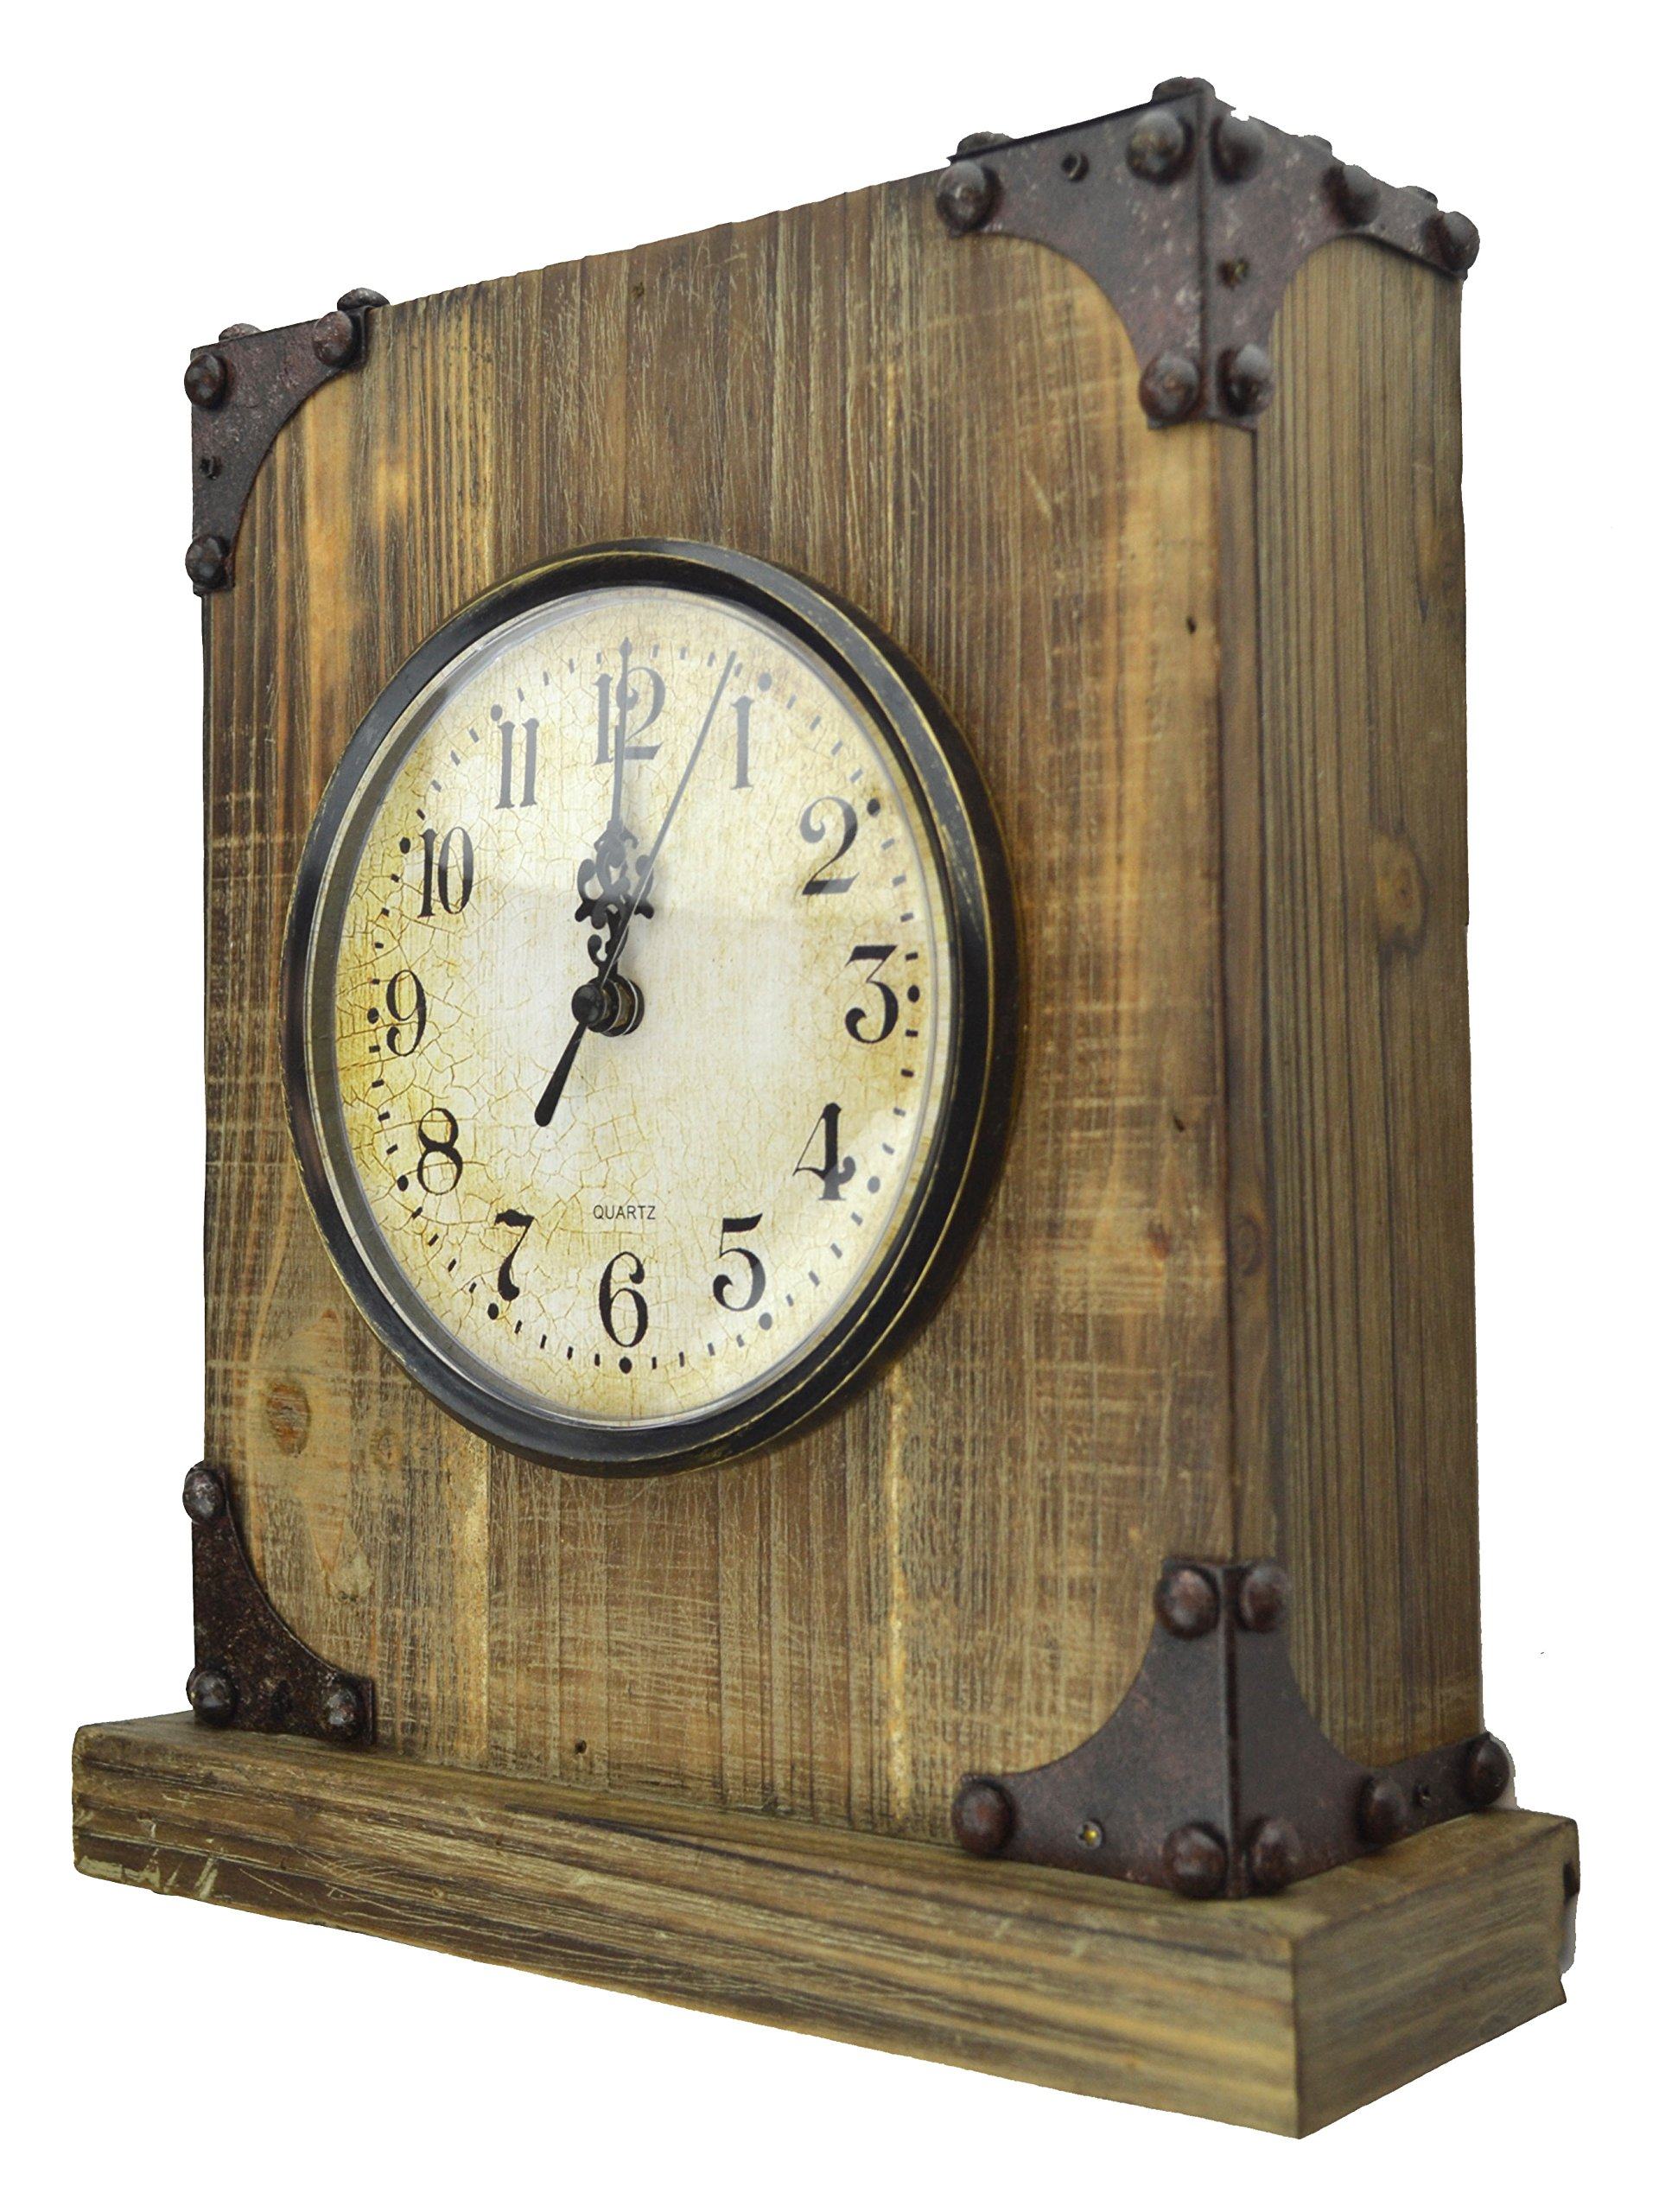 LuLu Decor, Rustic Wood Tabletop Clock with Key Holder in Hidden Area (Desk Clock)